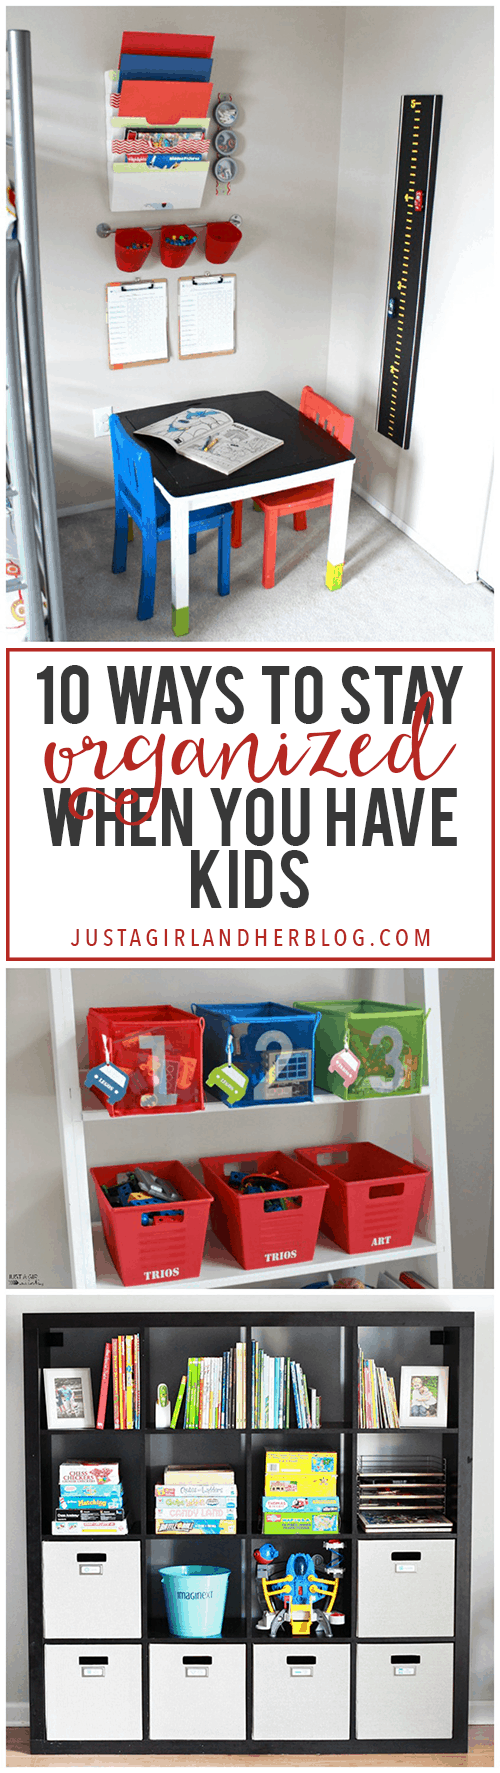 Love these ideas for getting organized when you have kids at home! Click through to see all of her smart tips and tricks!